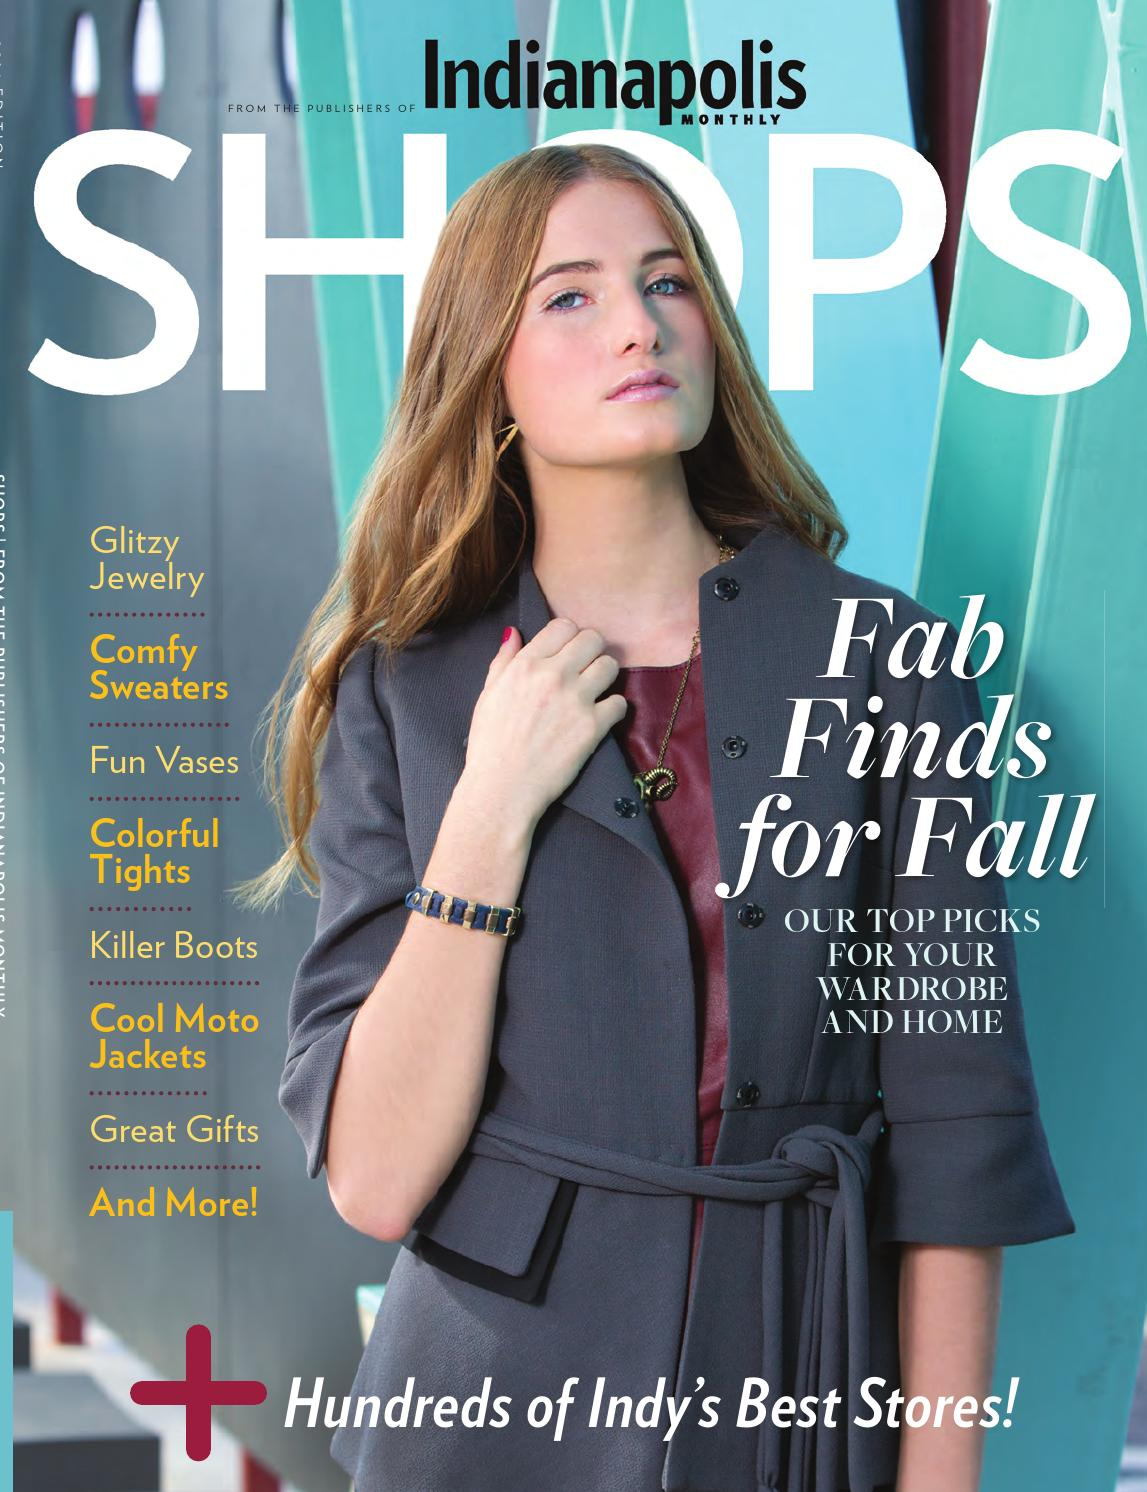 128ad85abf Indianapolis Monthly SHOPS by Indianapolis Monthly - issuu